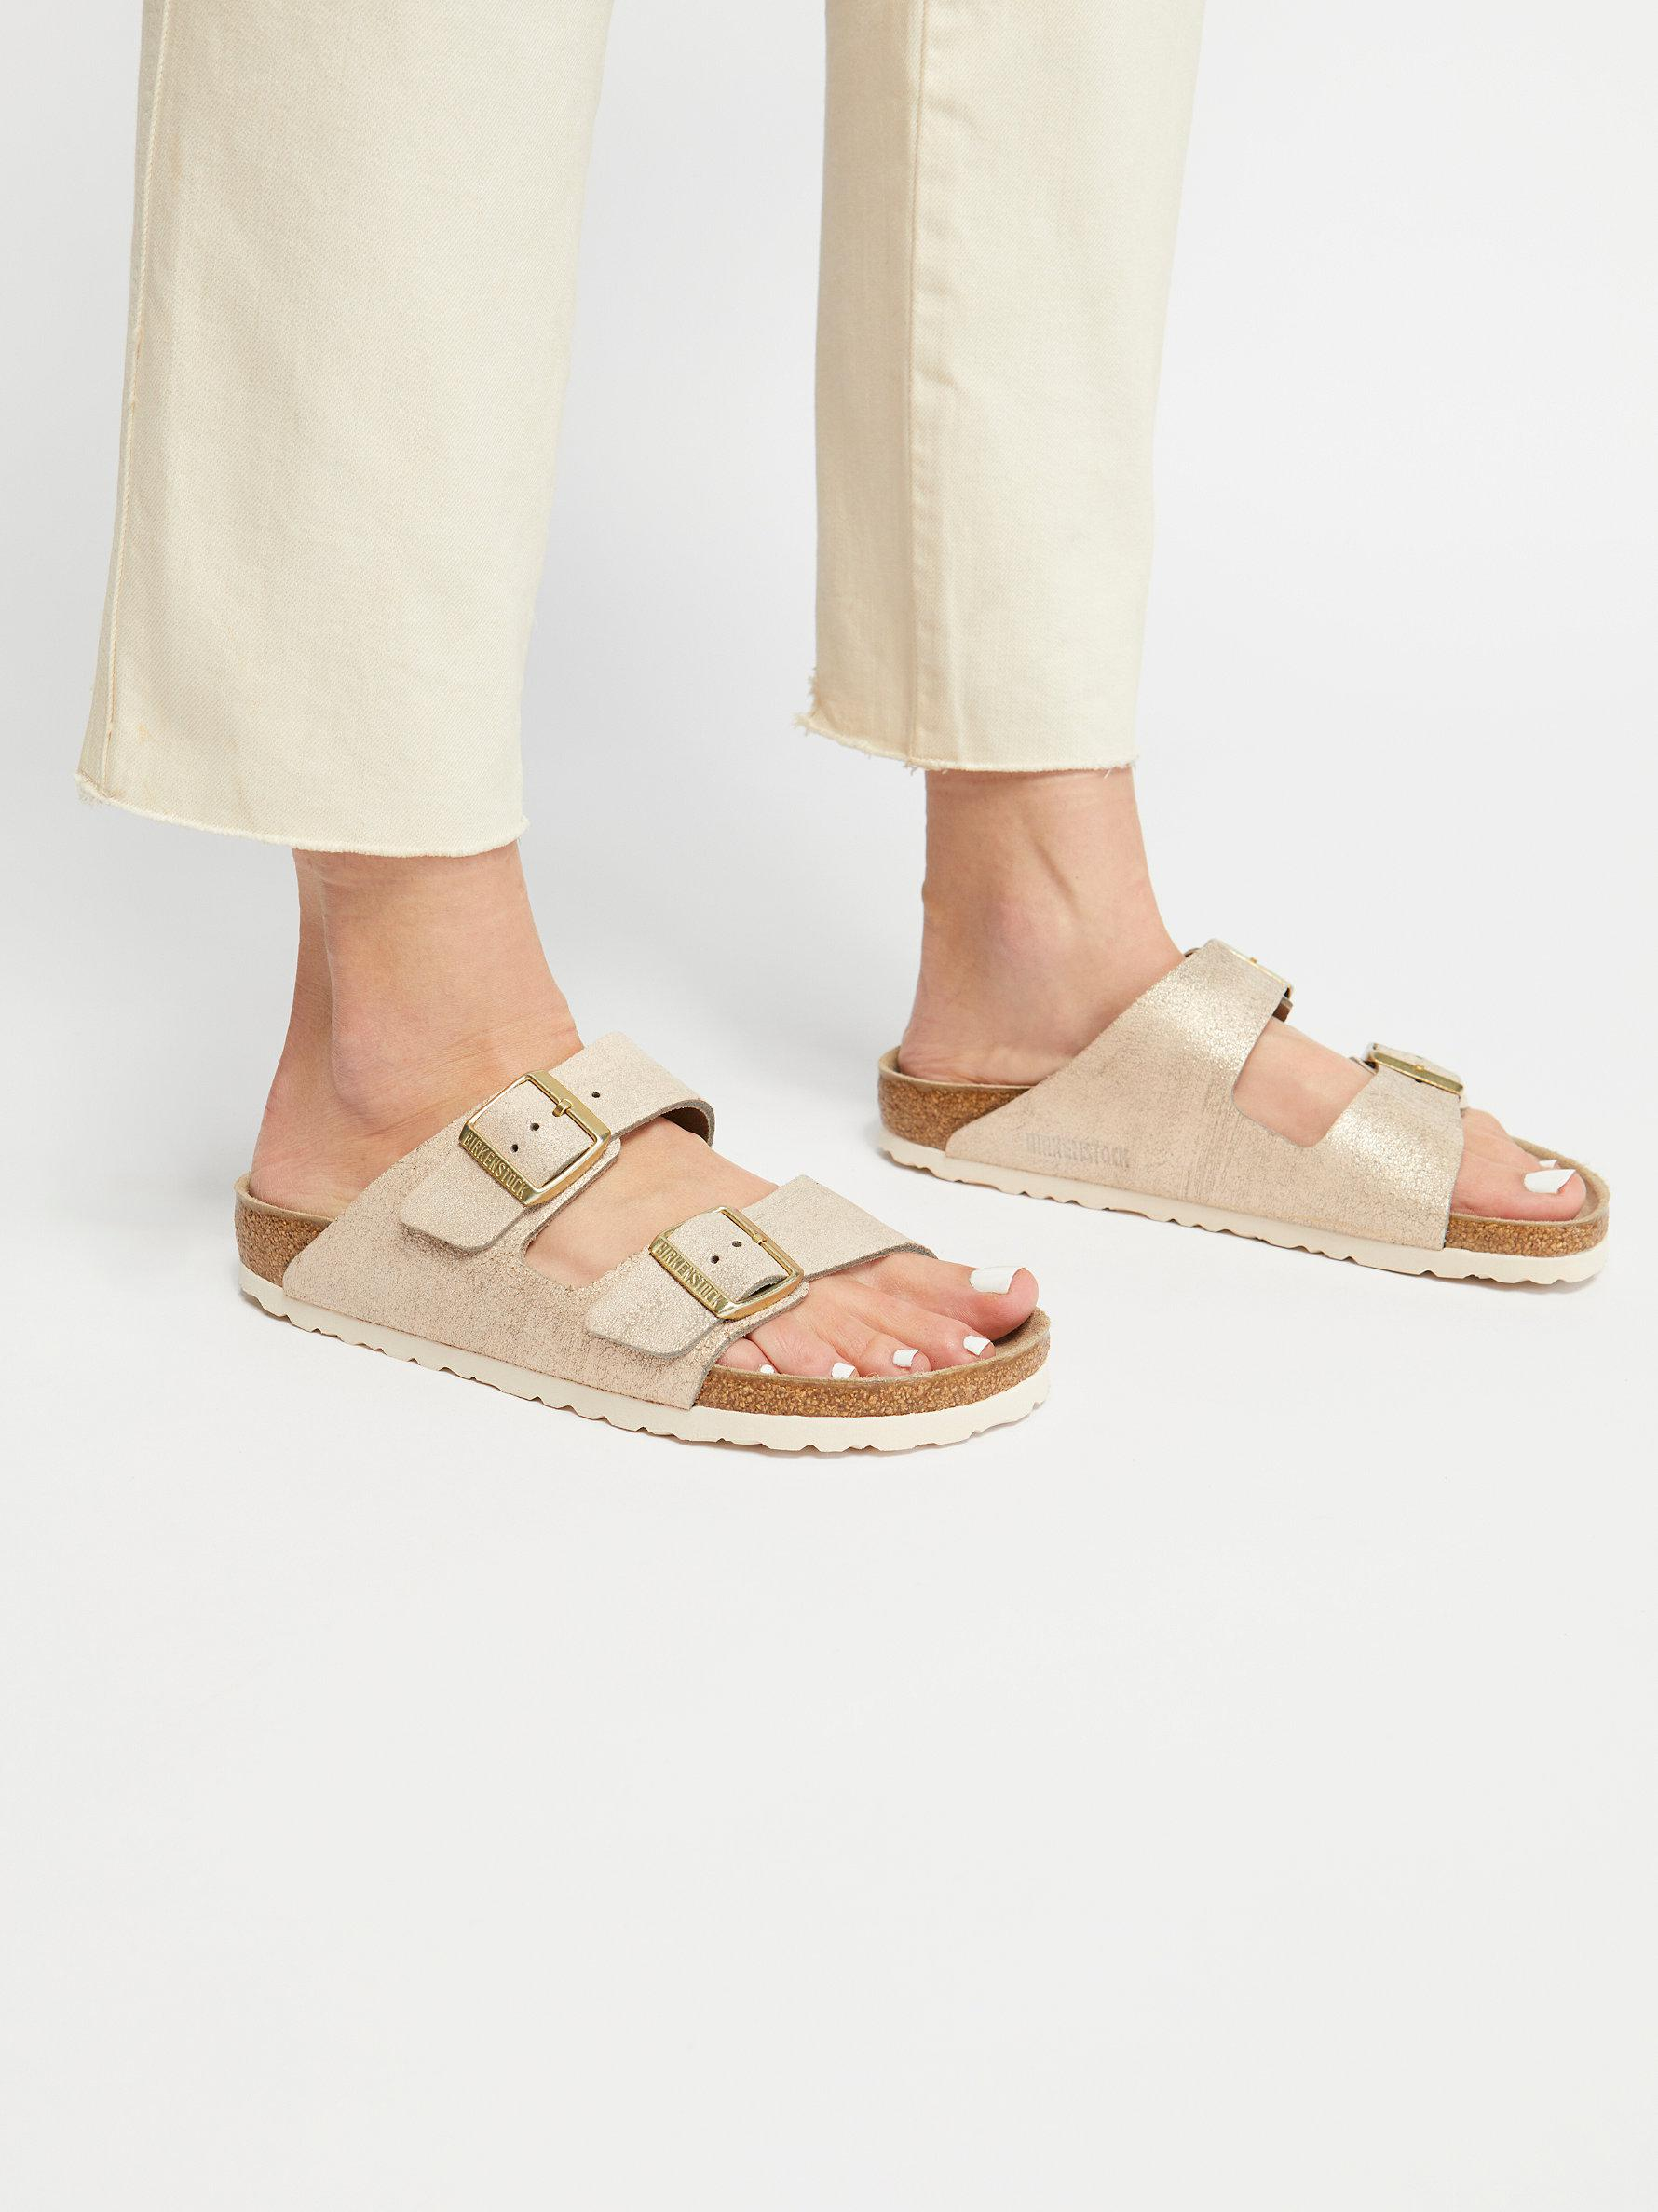 d38dfce95897 Lyst - Free People Arizona Washed Metallic Birkenstock Sandal in ...